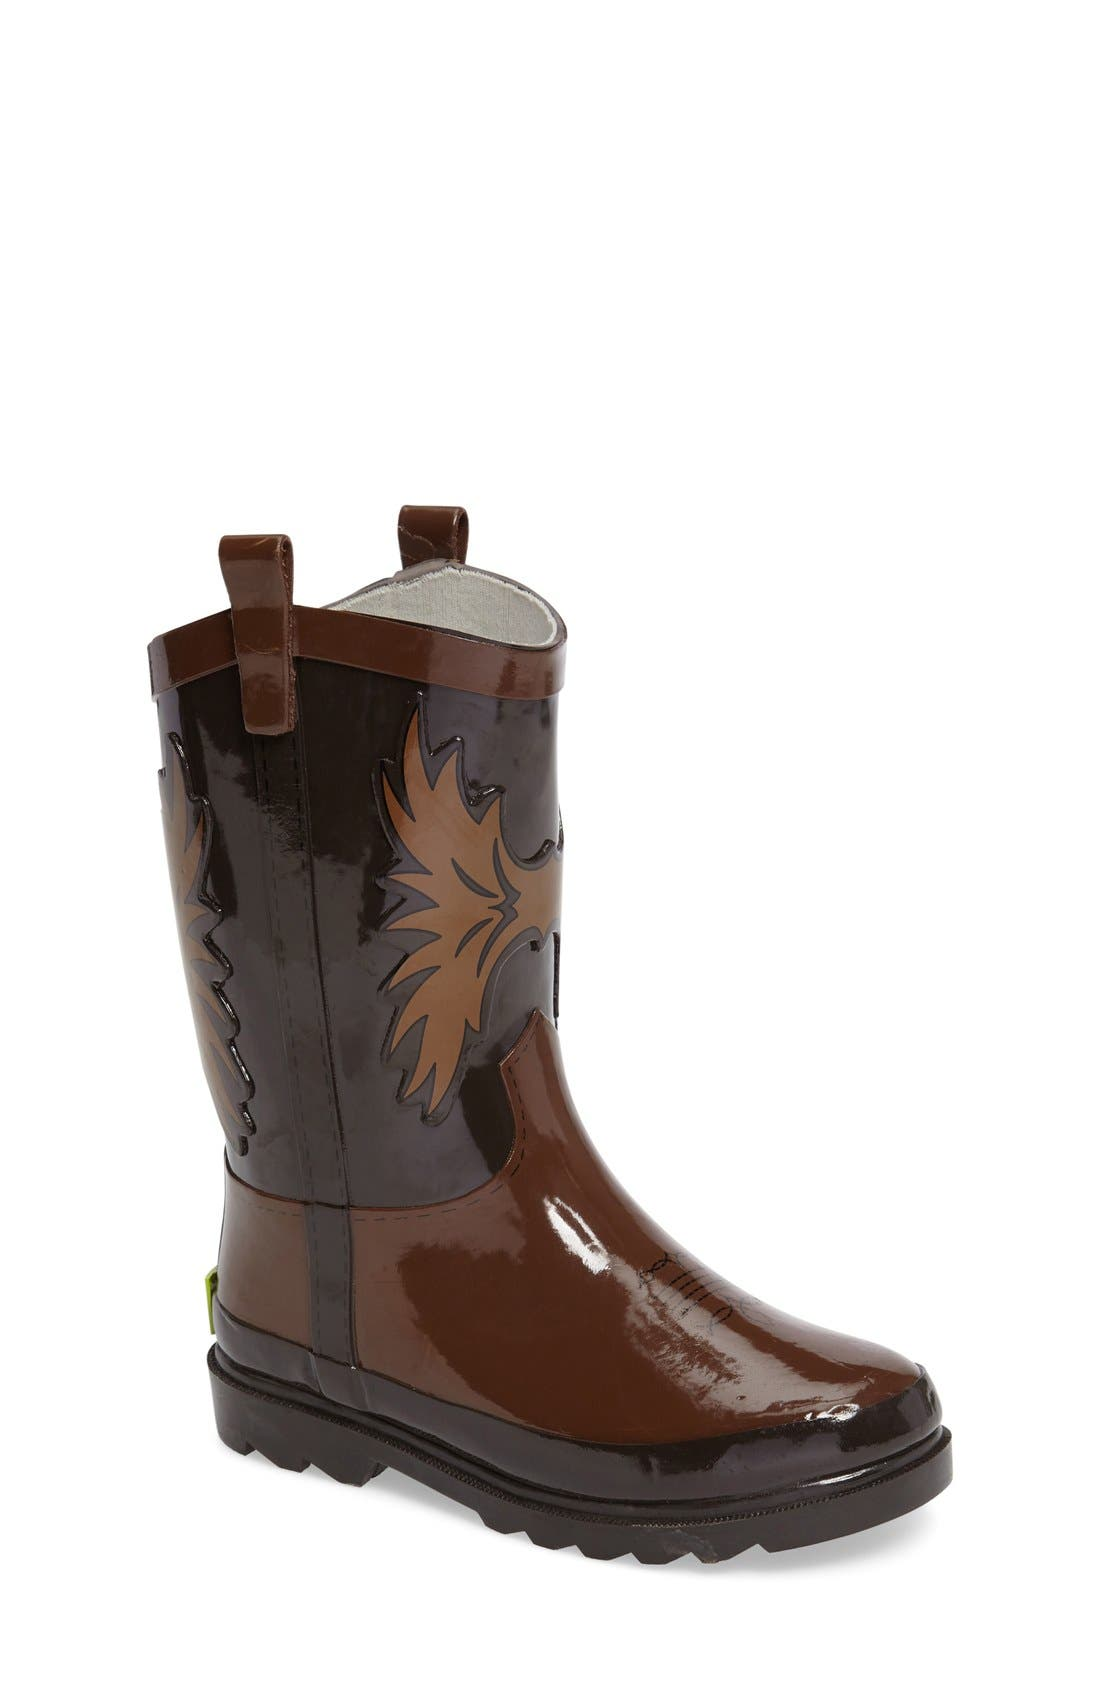 Alternate Image 1 Selected - Western Chief Cowboy Waterproof Rain Boot (Walker, Toddler, Little Kid & Big Kid)